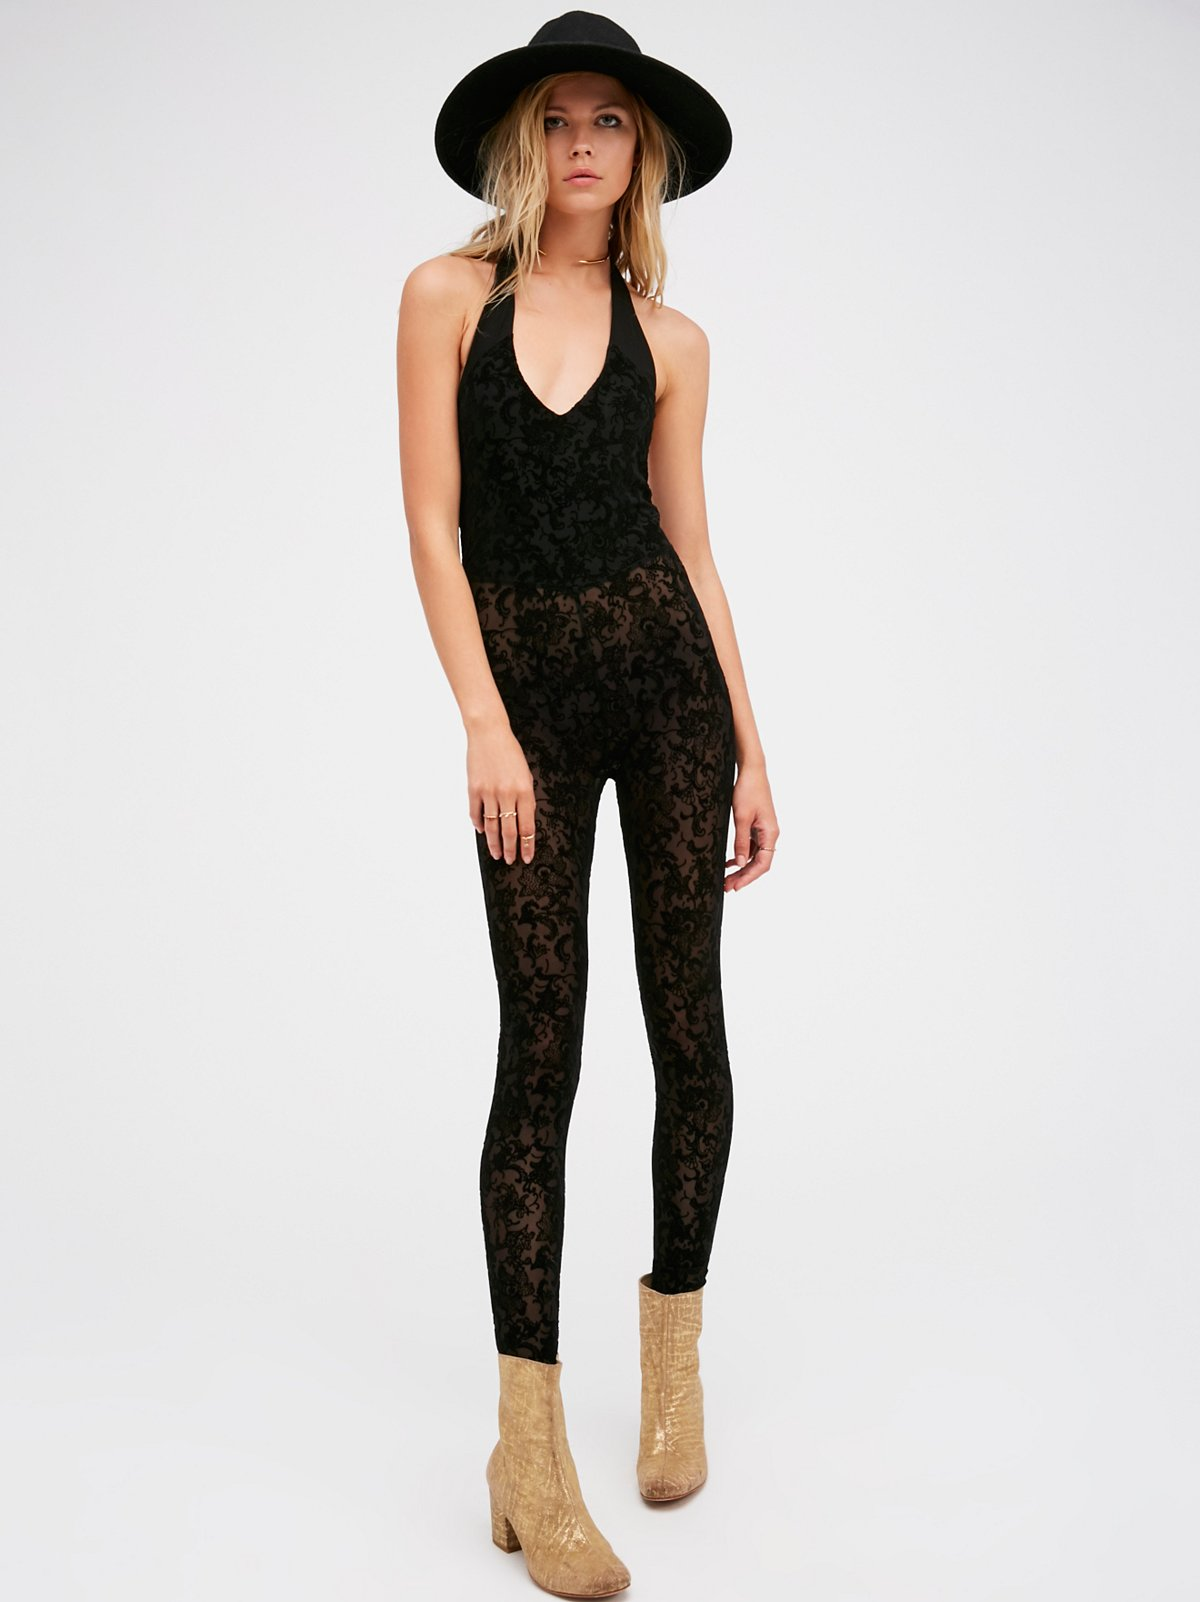 Flock To Trot Catsuit